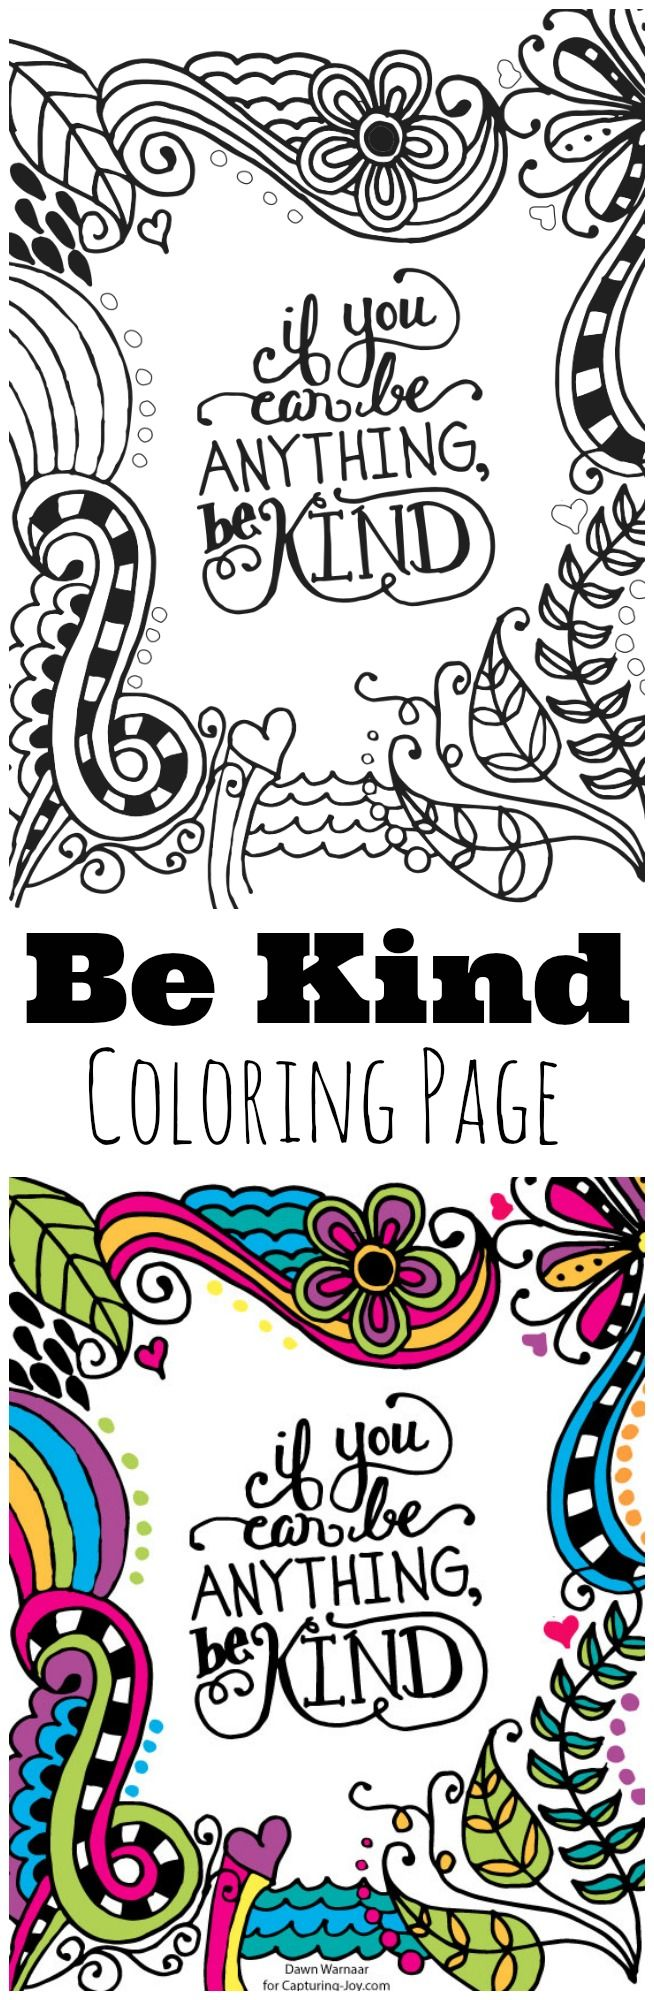 be kind kids coloring page great for kids to help encourage kindness hang on